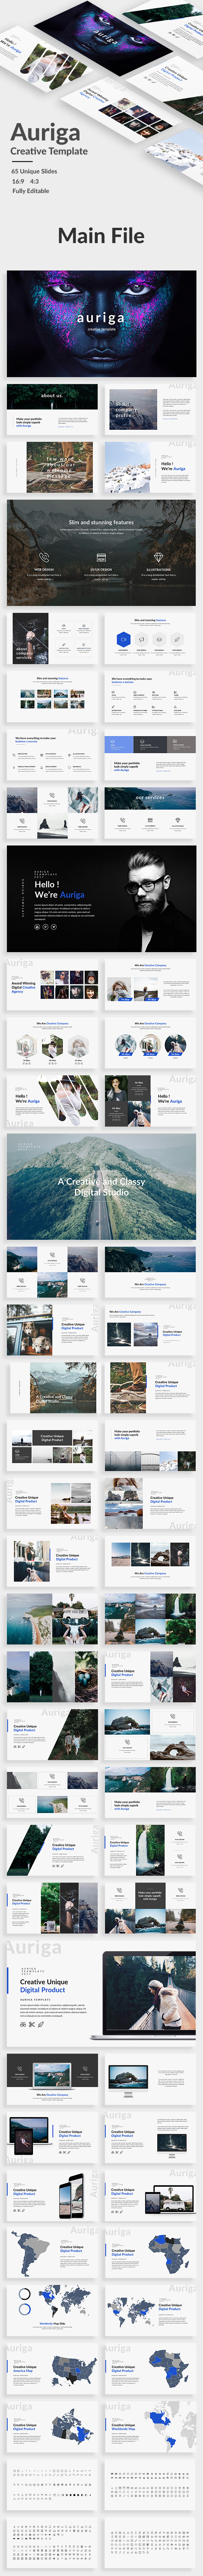 Auriga Creative Google Slide Template - Google Slides Presentation Templates